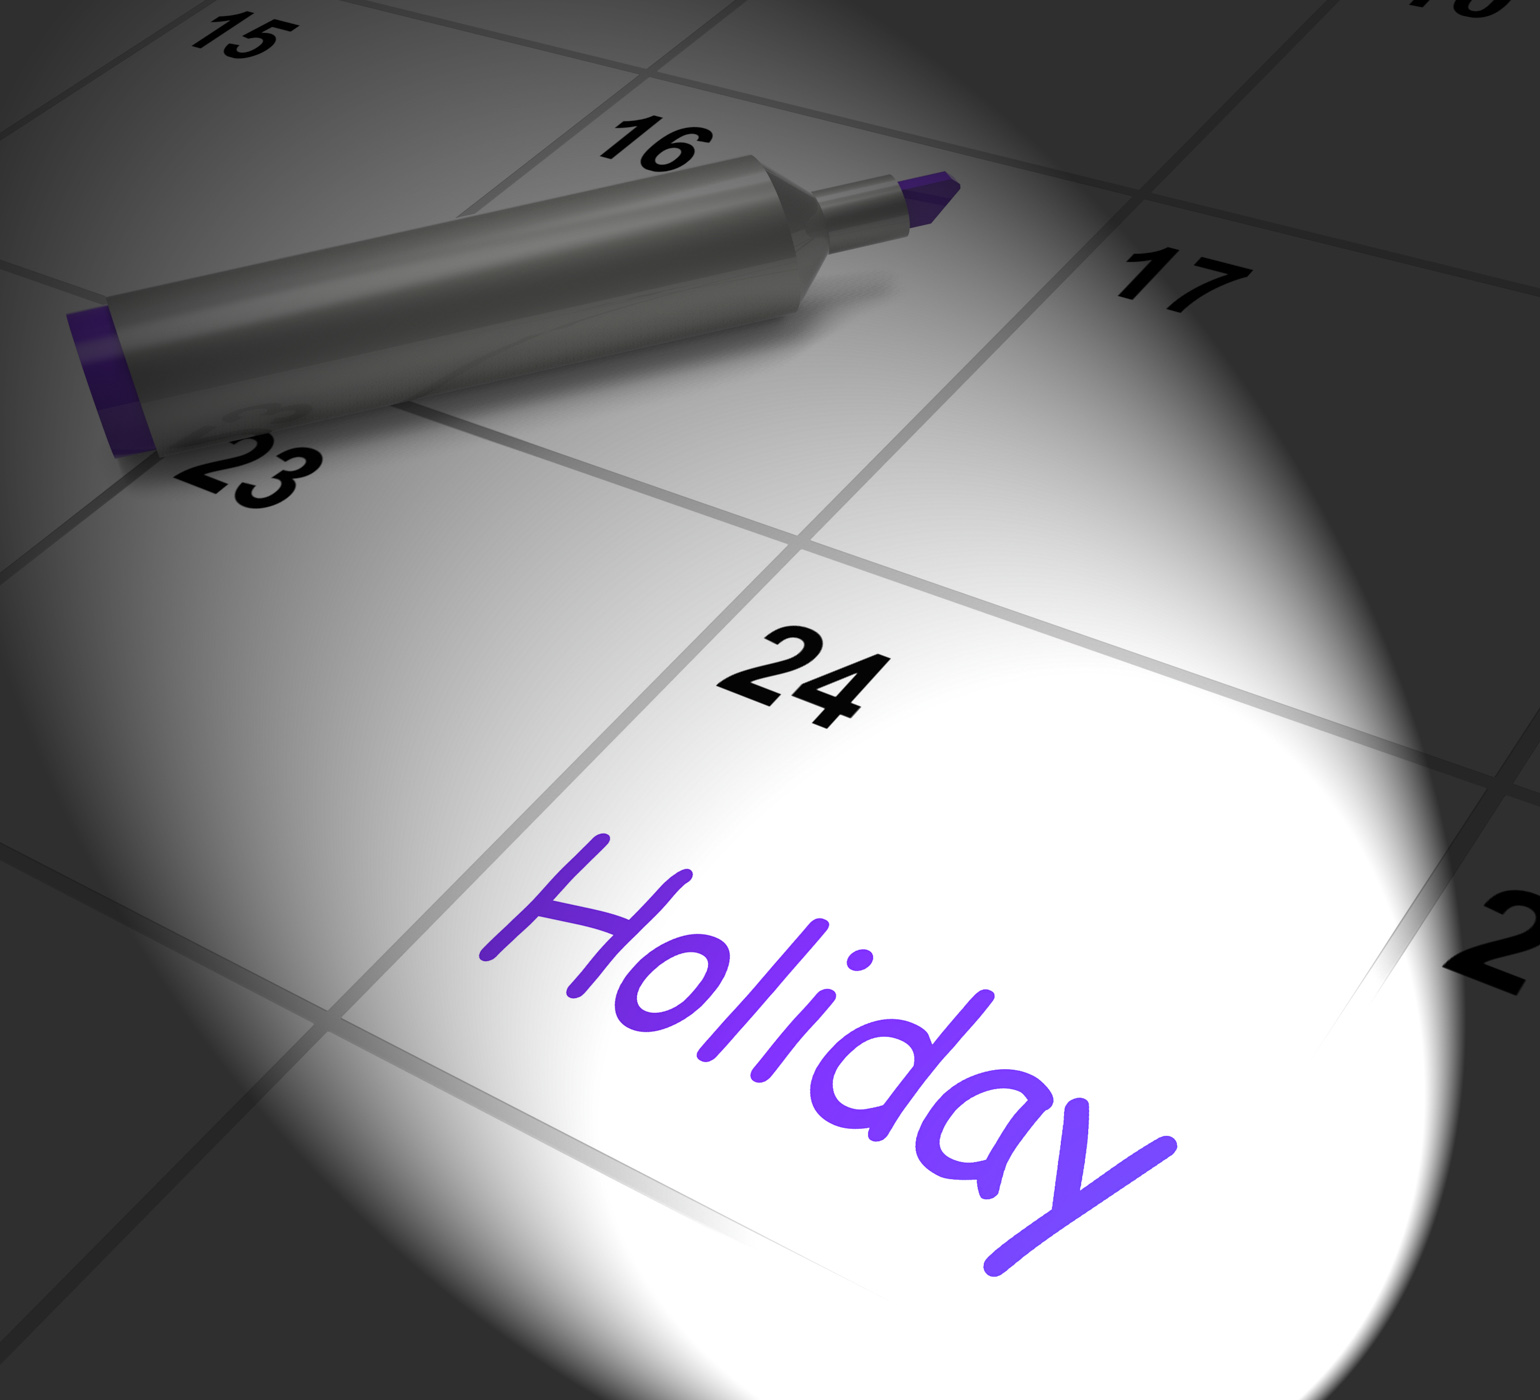 Holiday Calendar Displays Rest Day And Break From Work, Break, Off, Vacation, Timeoff, HQ Photo